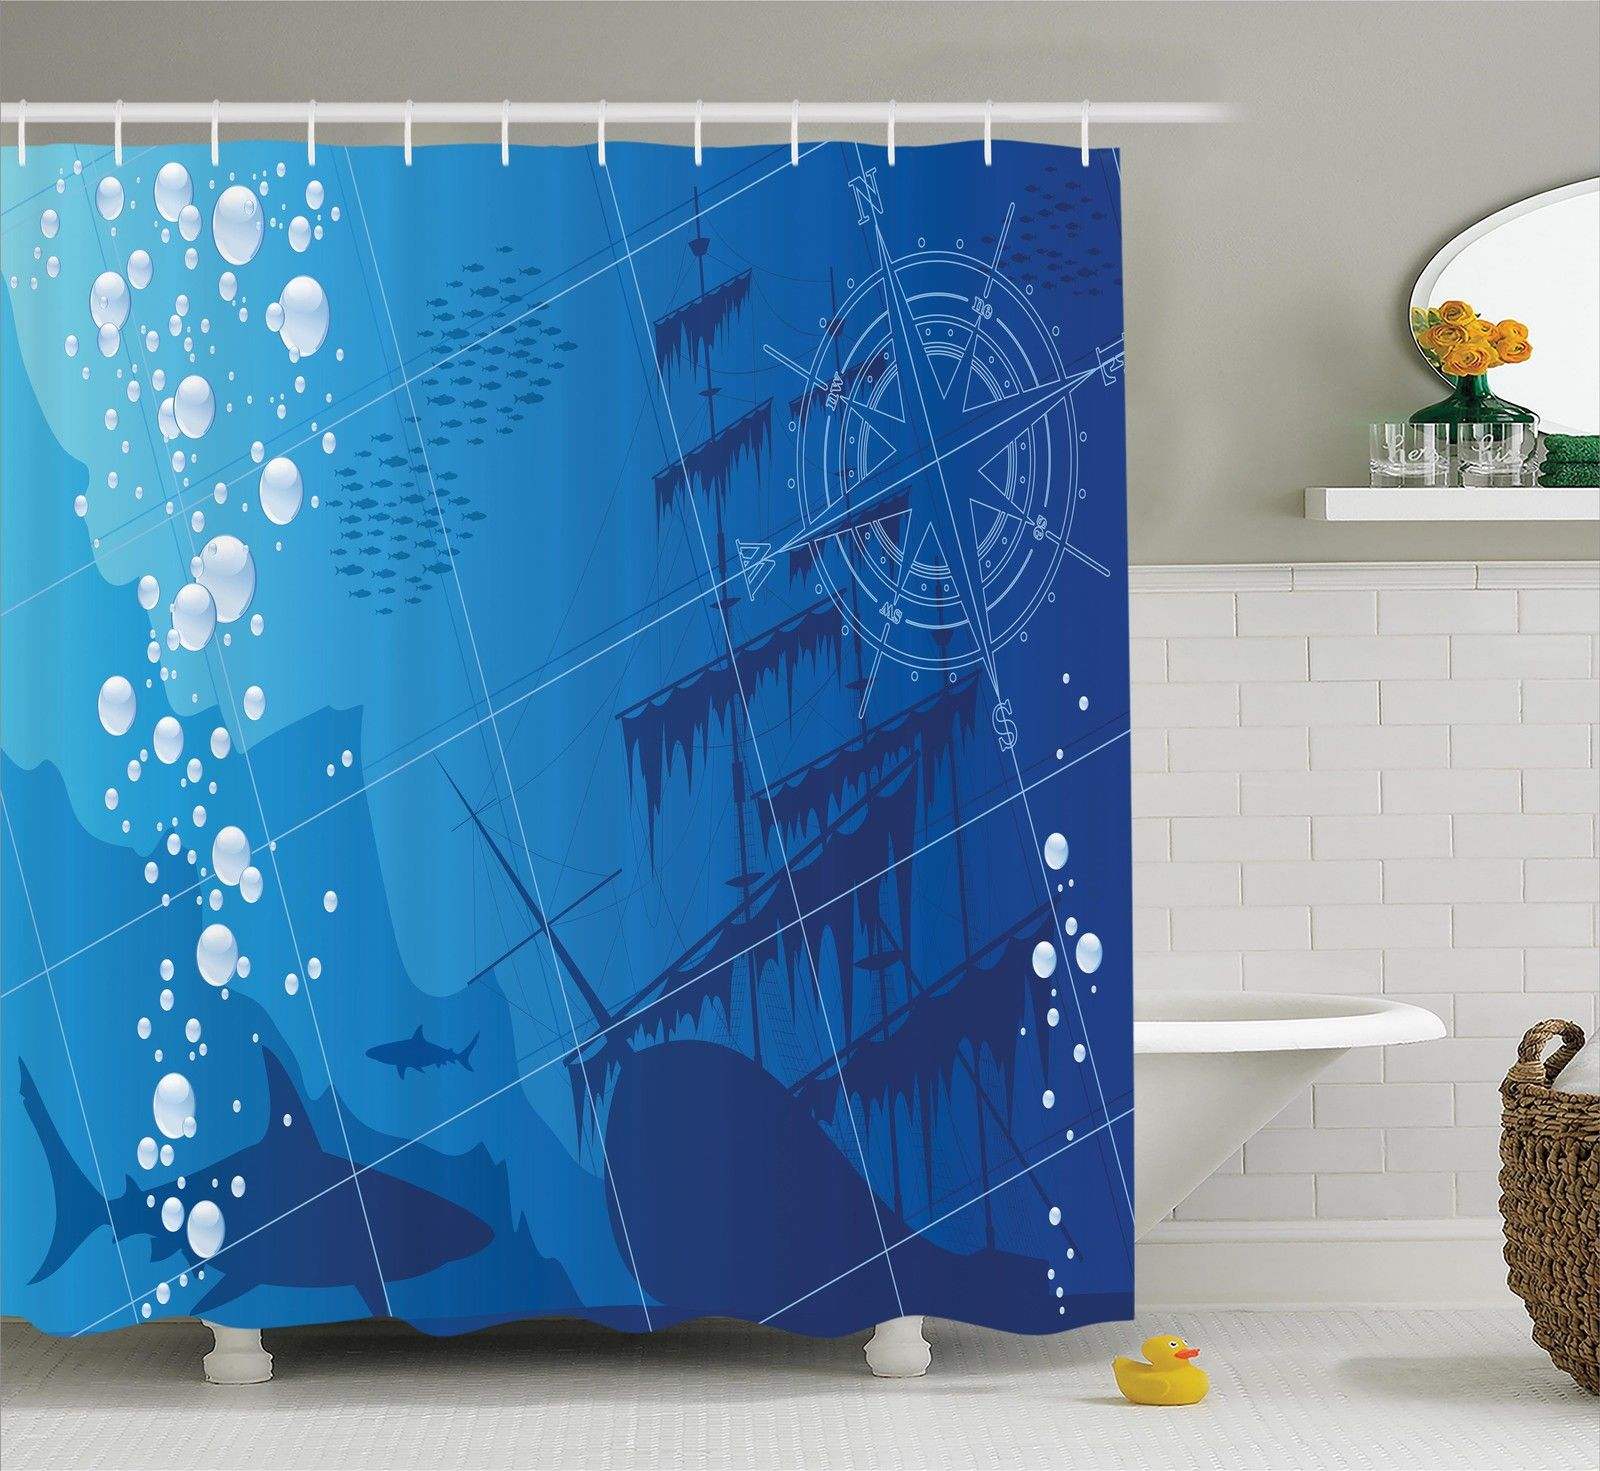 Blue Gold Ambesonne Nautical Decor Shower Curtain Traditional Oriental Style Ocean Waves Pattern with Foam and Splashes Print Fabric Bathroom Decor Set with Hooks 84 Inches Extra Long